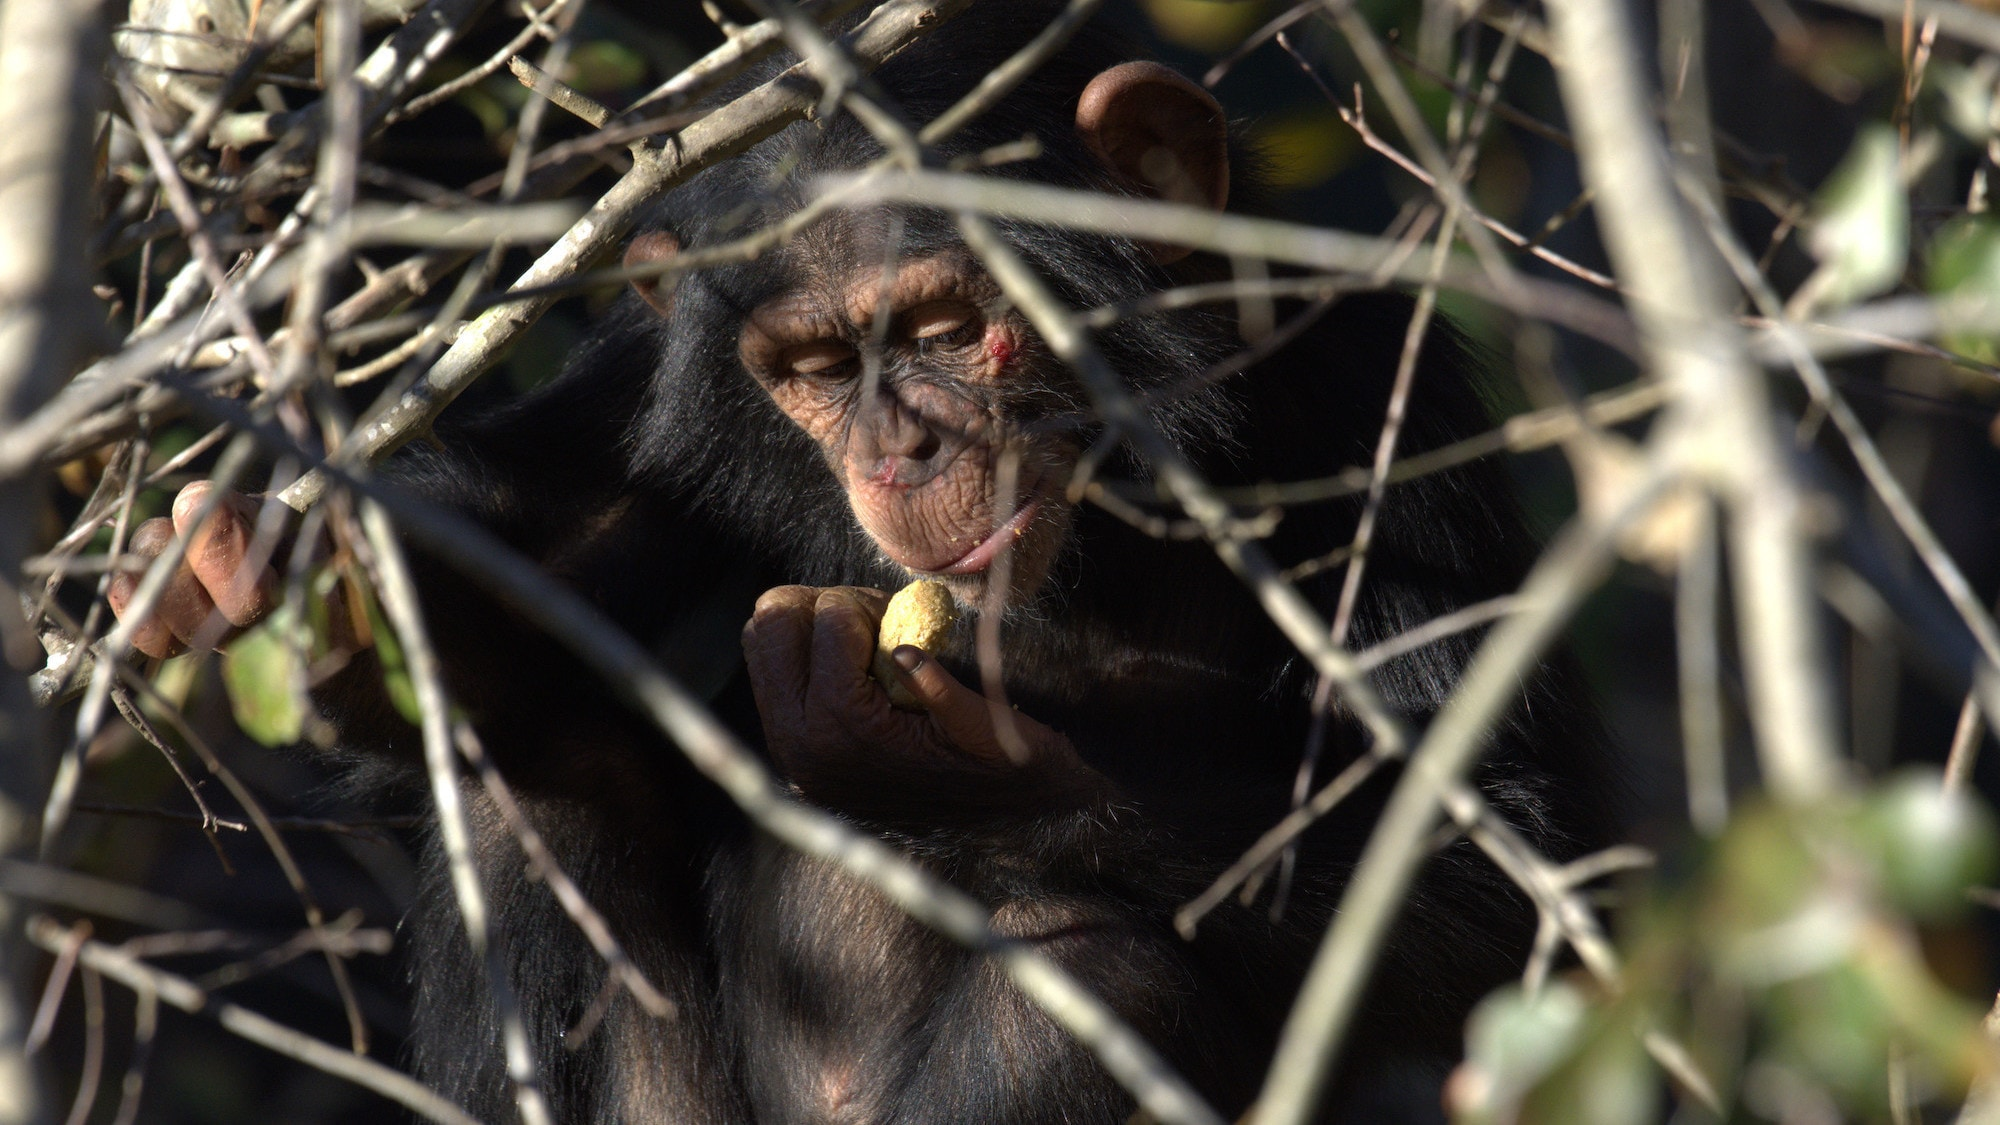 Carlee in a tree looking at Chow in hand. Chow is a nutritious food for chimpanzees. Sara Soda's group. (National Geographic/Virginia Quinn)